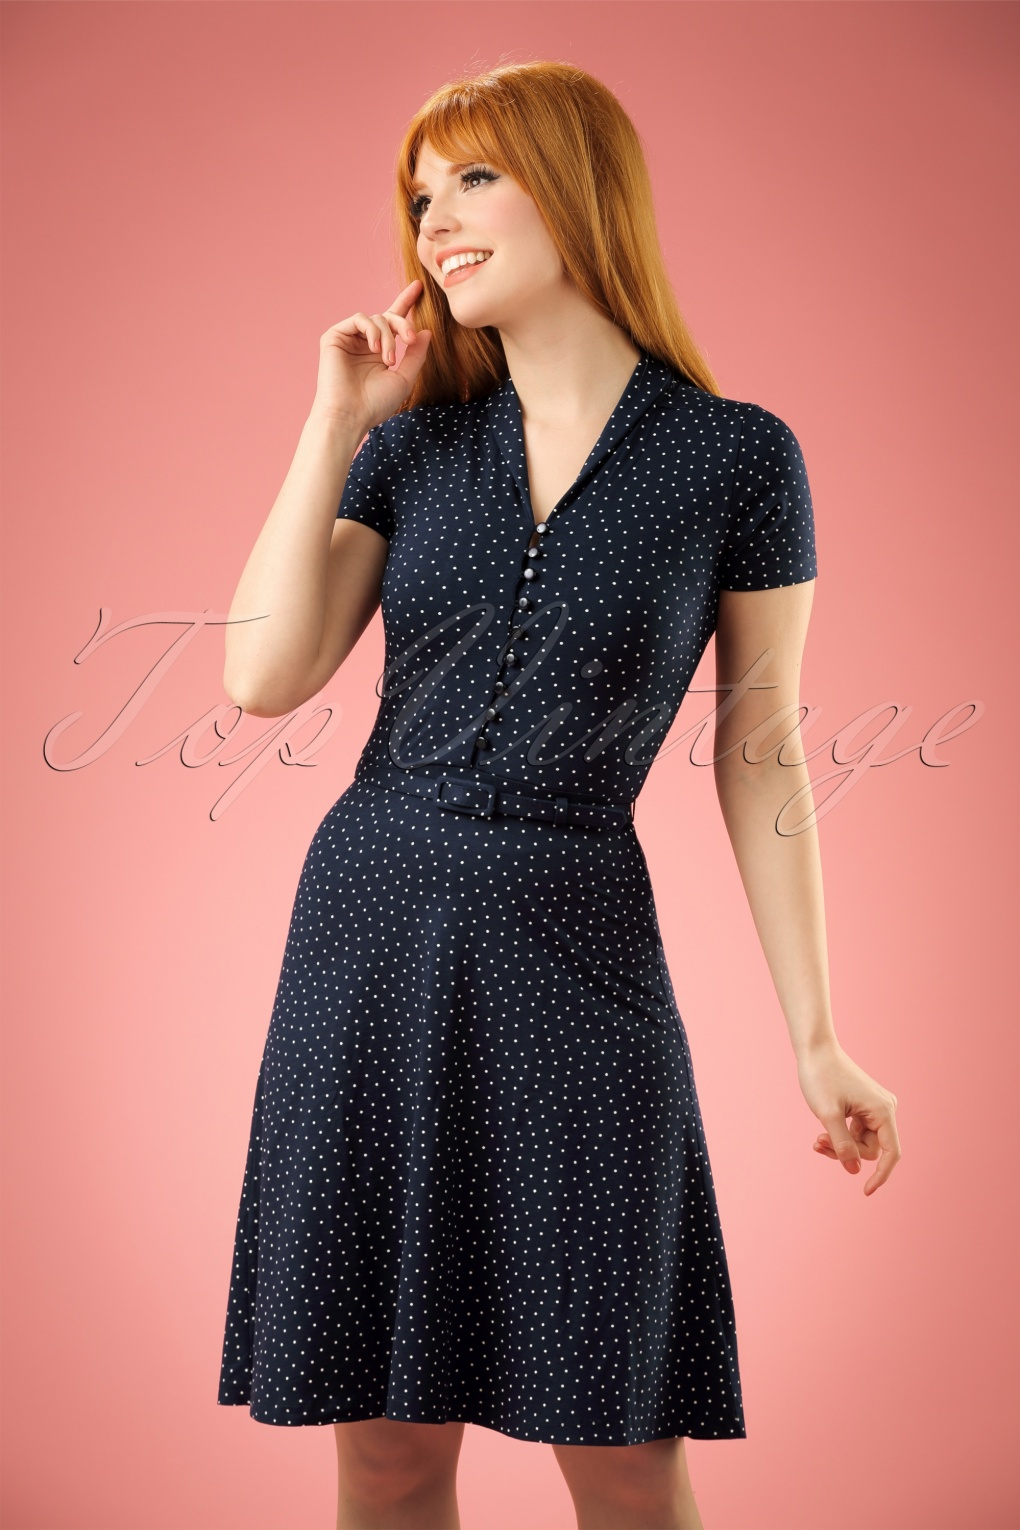 1950s Polka Dot Dresses 40s Emmy Little Dots Dress in Nuit Blue £84.89 AT vintagedancer.com